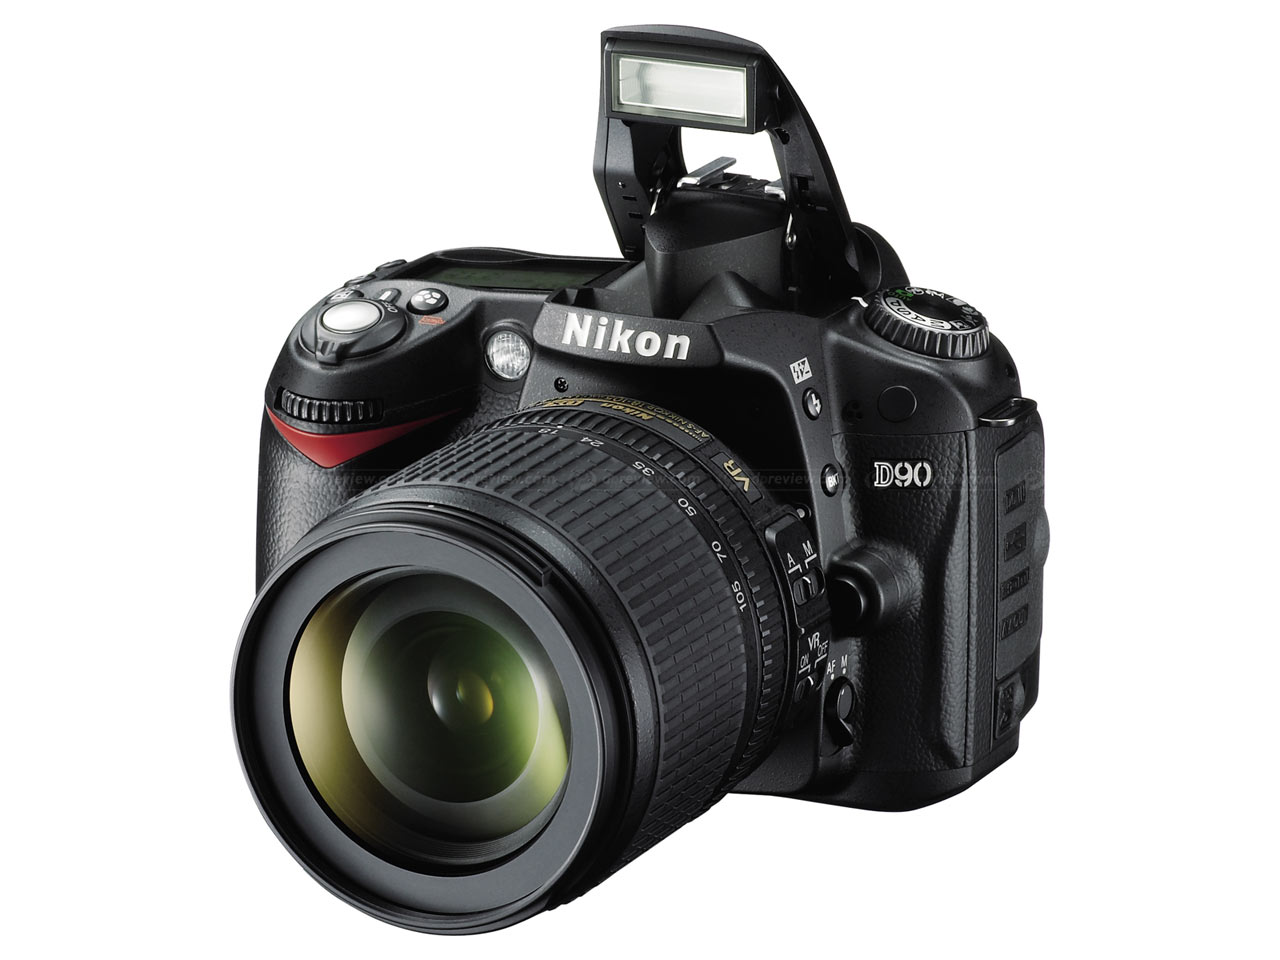 Nikon D90 plus hands-on preview: Digital Photography Review